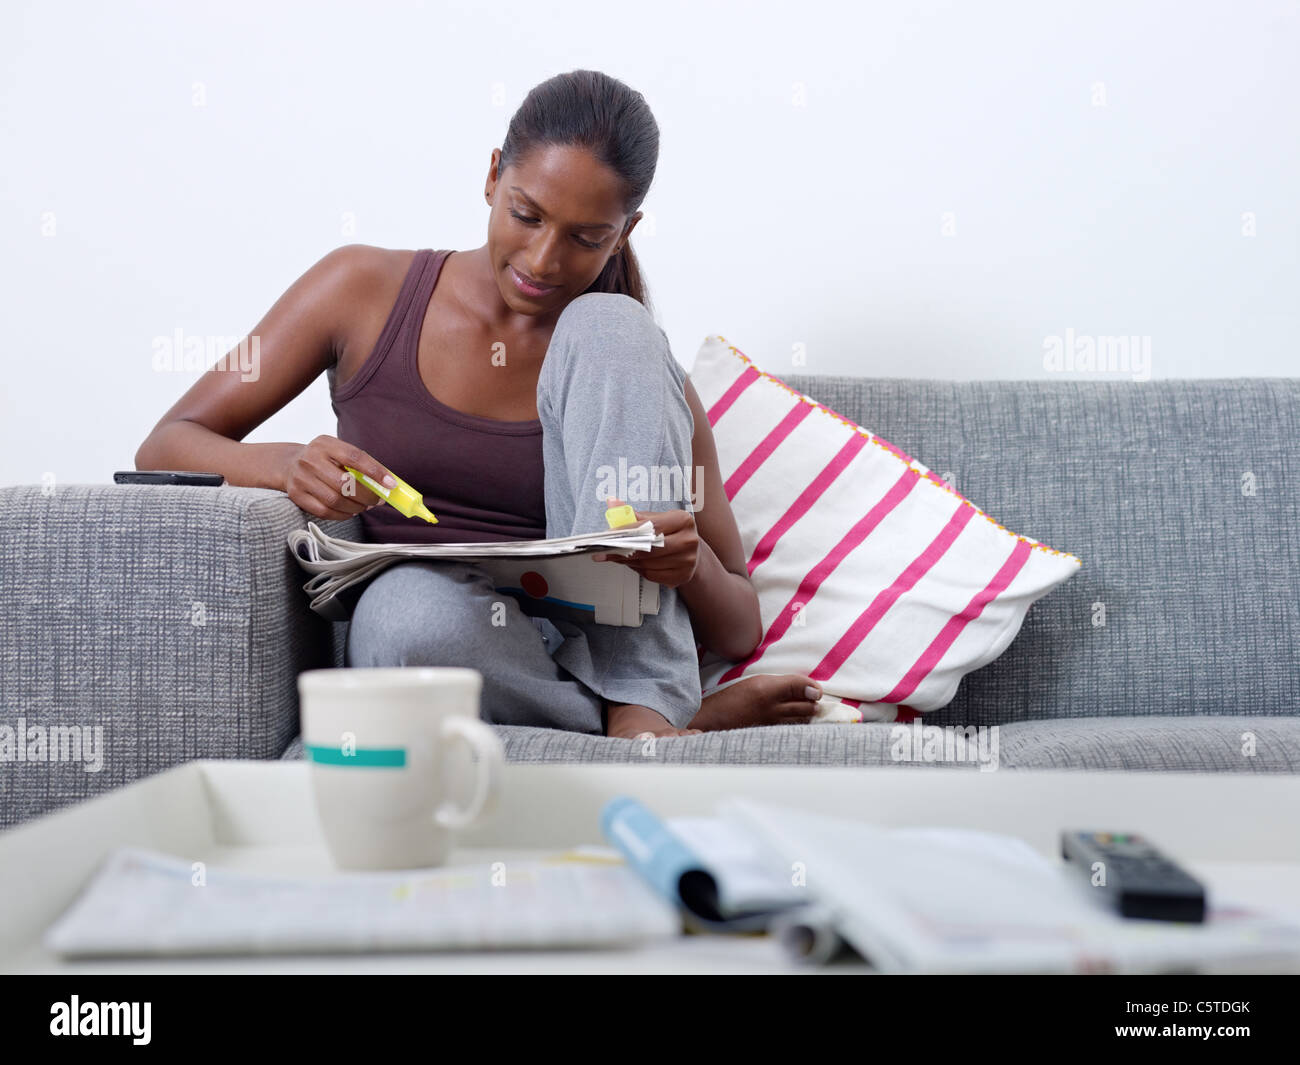 mid adult indian woman on sofa, looking for job offers on newspapers. Front view, copy space - Stock Image